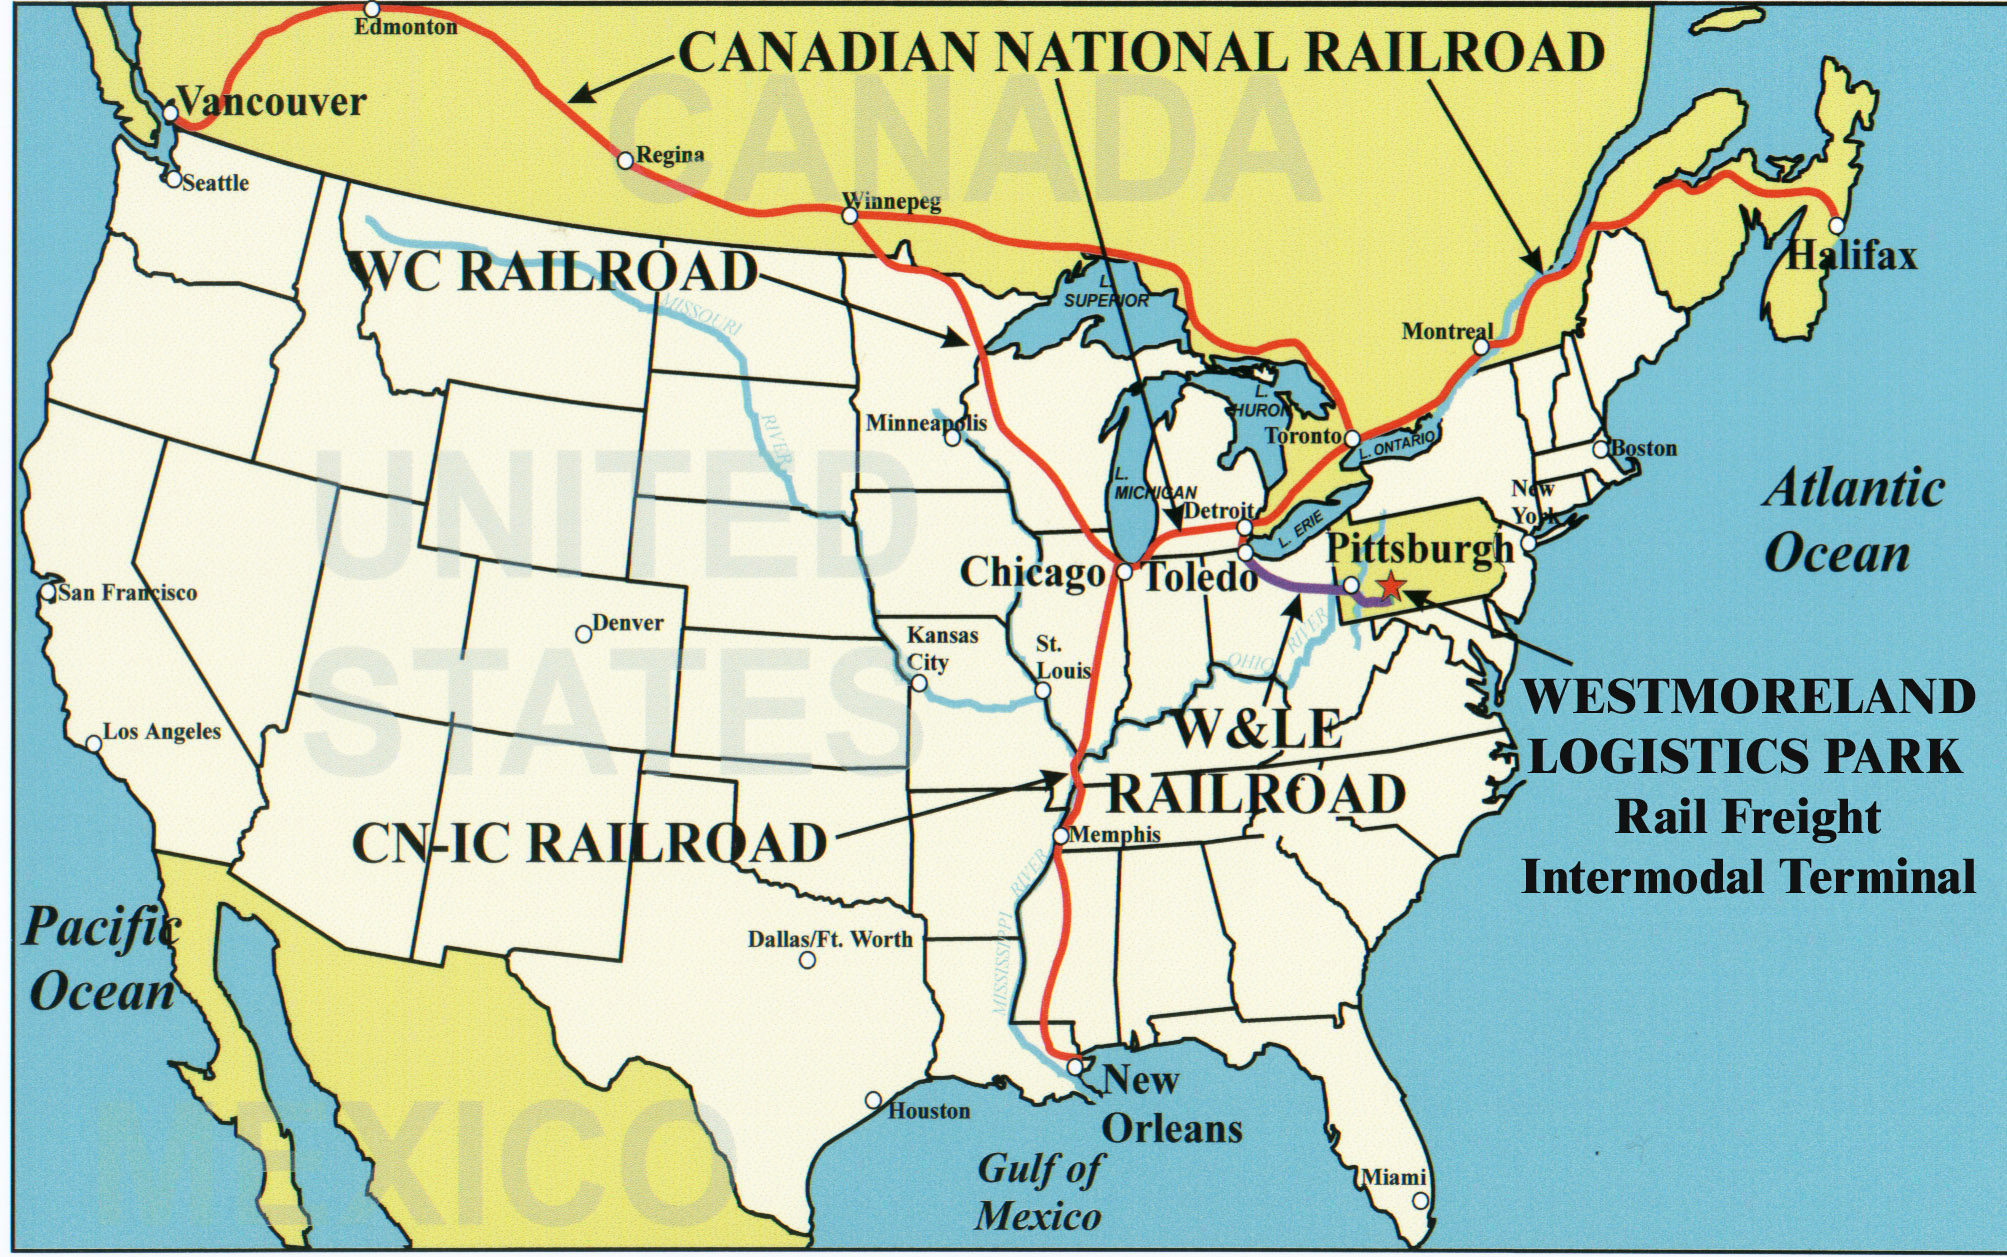 Pin canadian national railroad map on pinterest - Cn Rail Connection